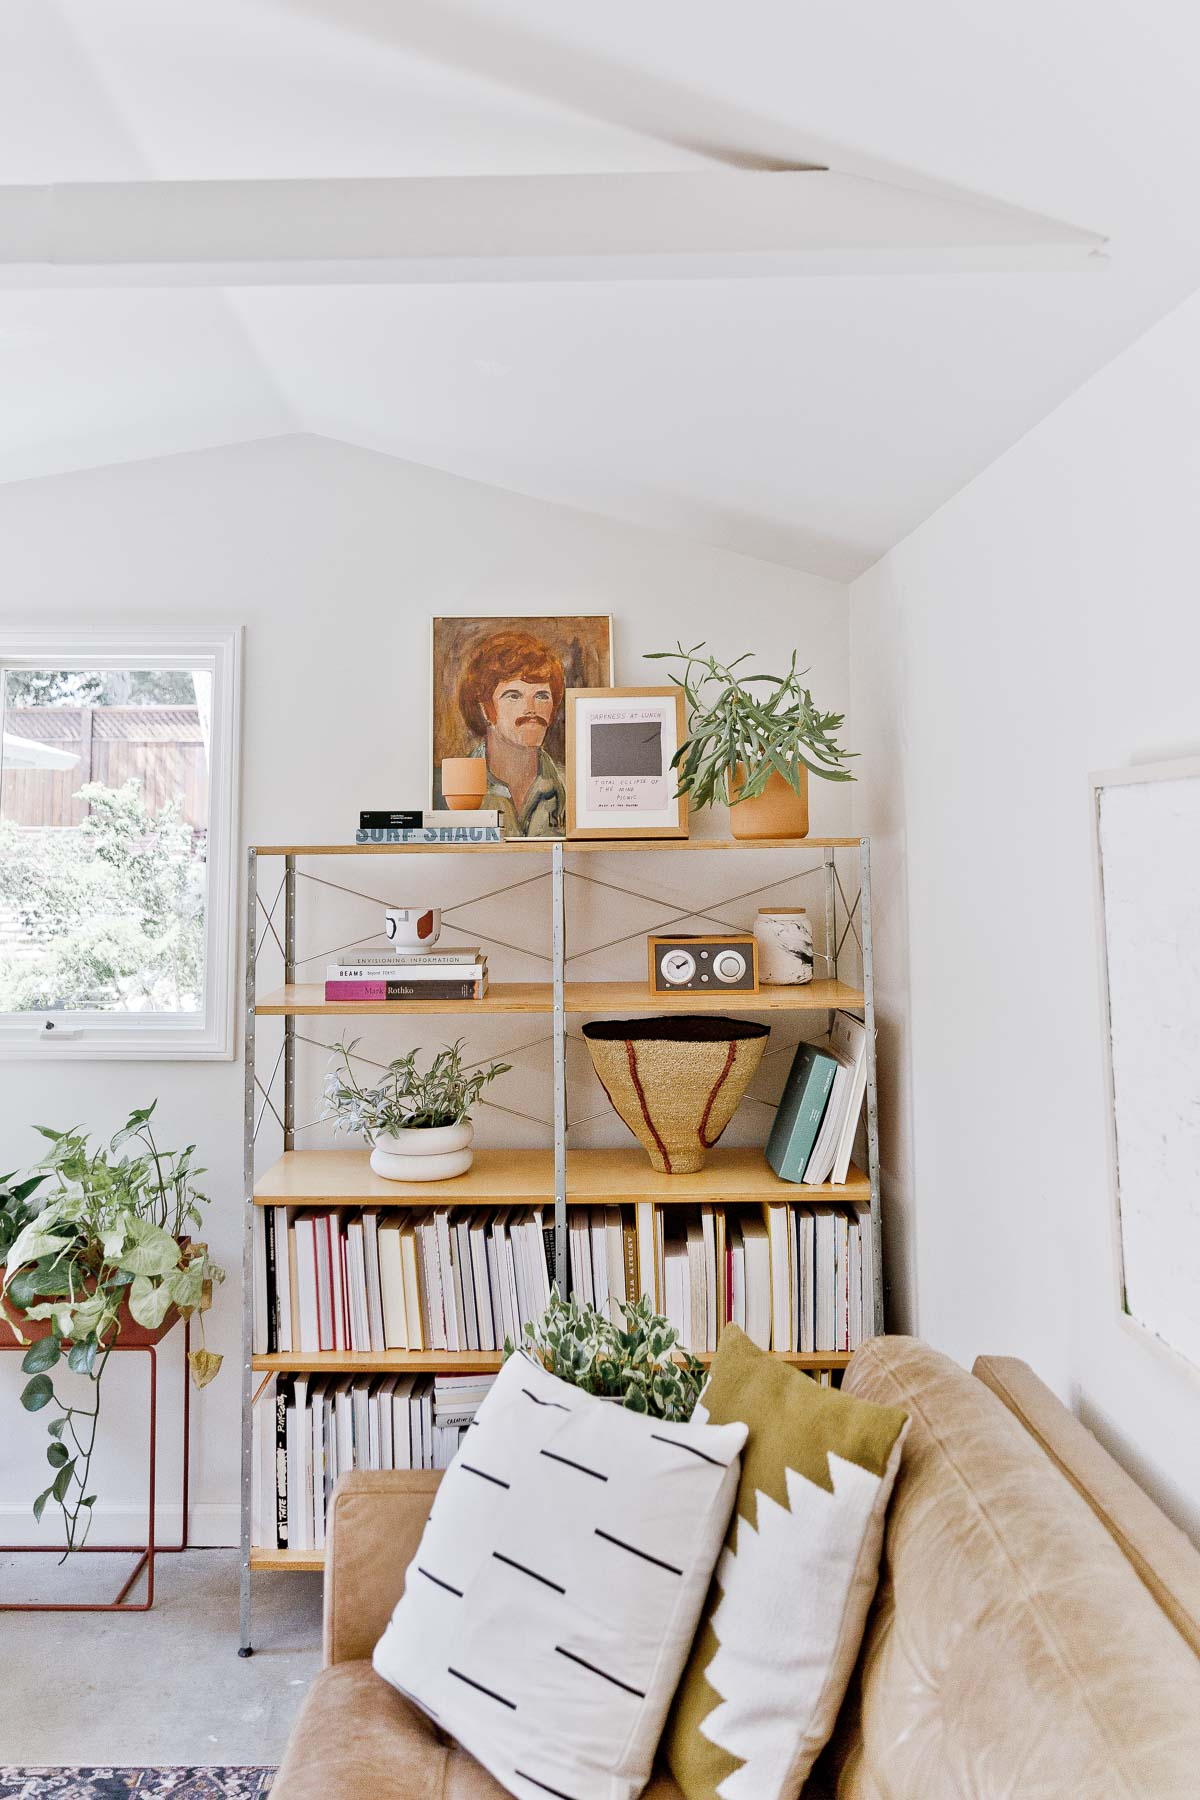 book shelves styled with books on the bottom shelves and decorative items on top shelves